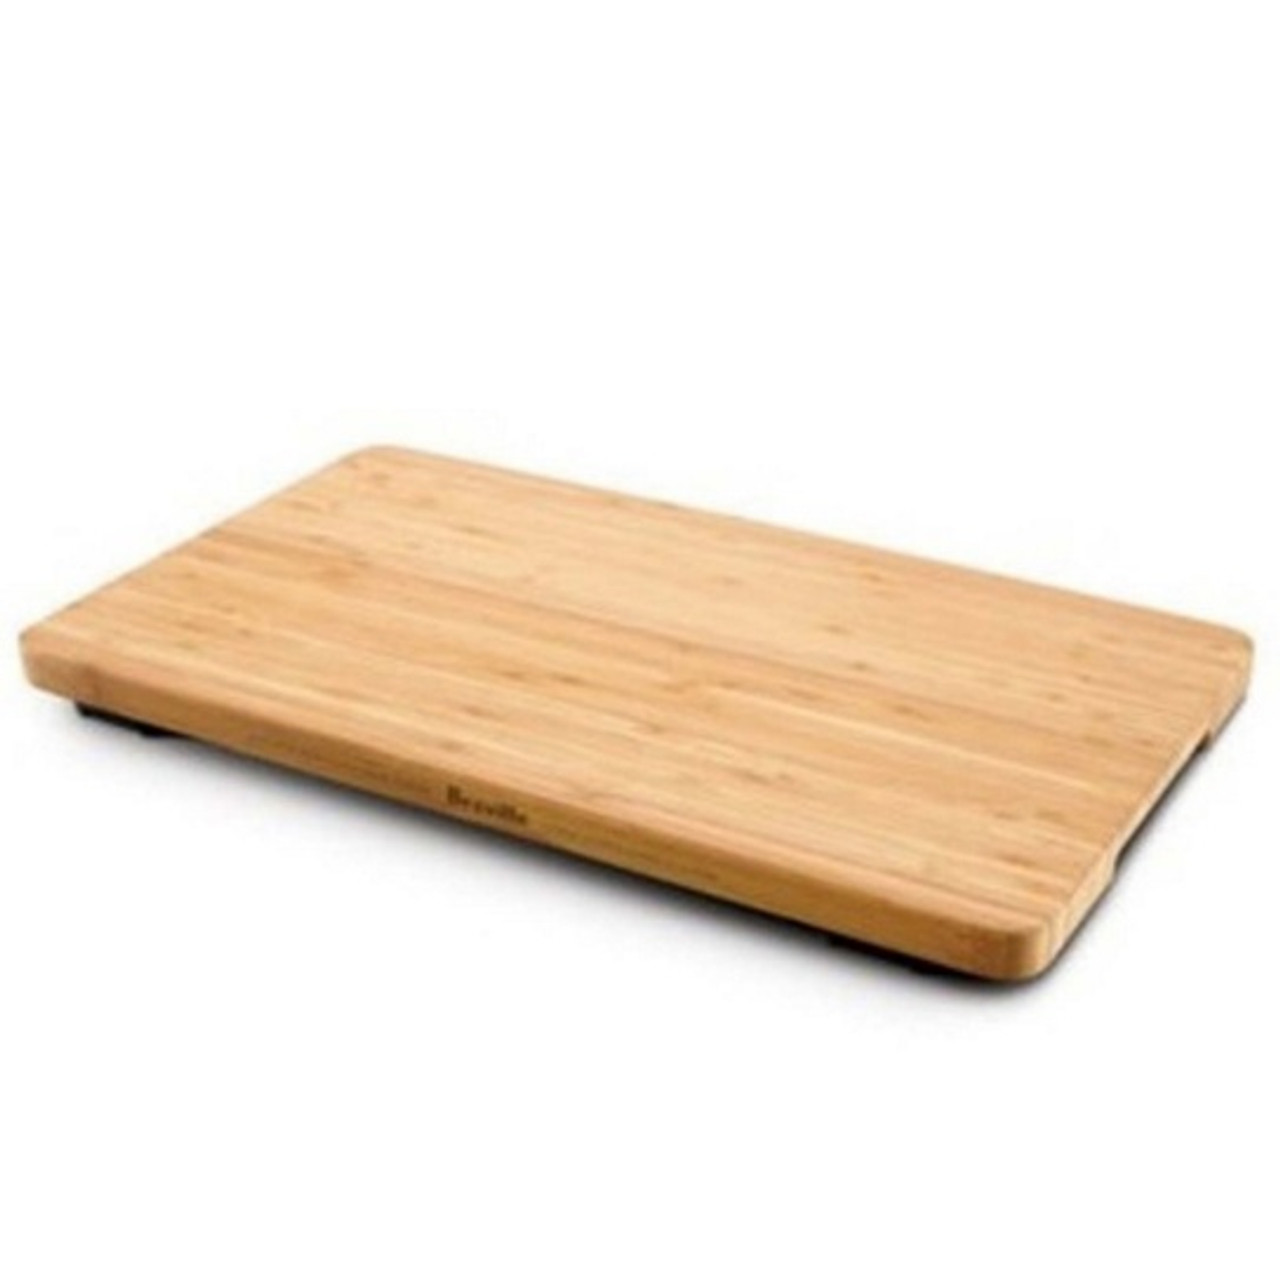 BREVILLE BAMBOO CUTTING BOARD (FOR BOV650BSS)